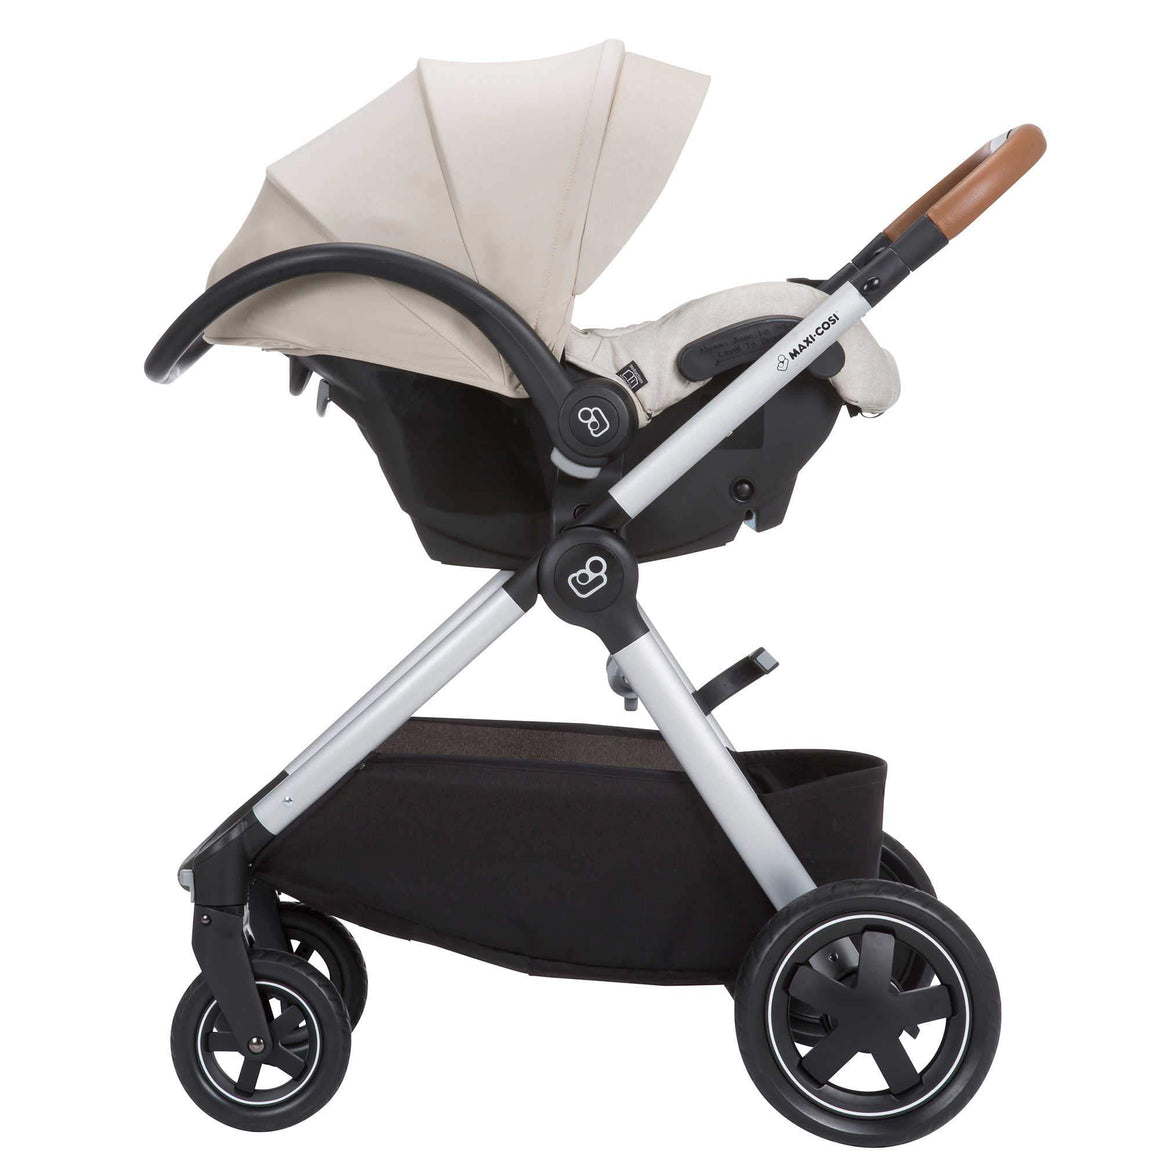 Maxi Cosi Car Seat Stroller Travel Systems